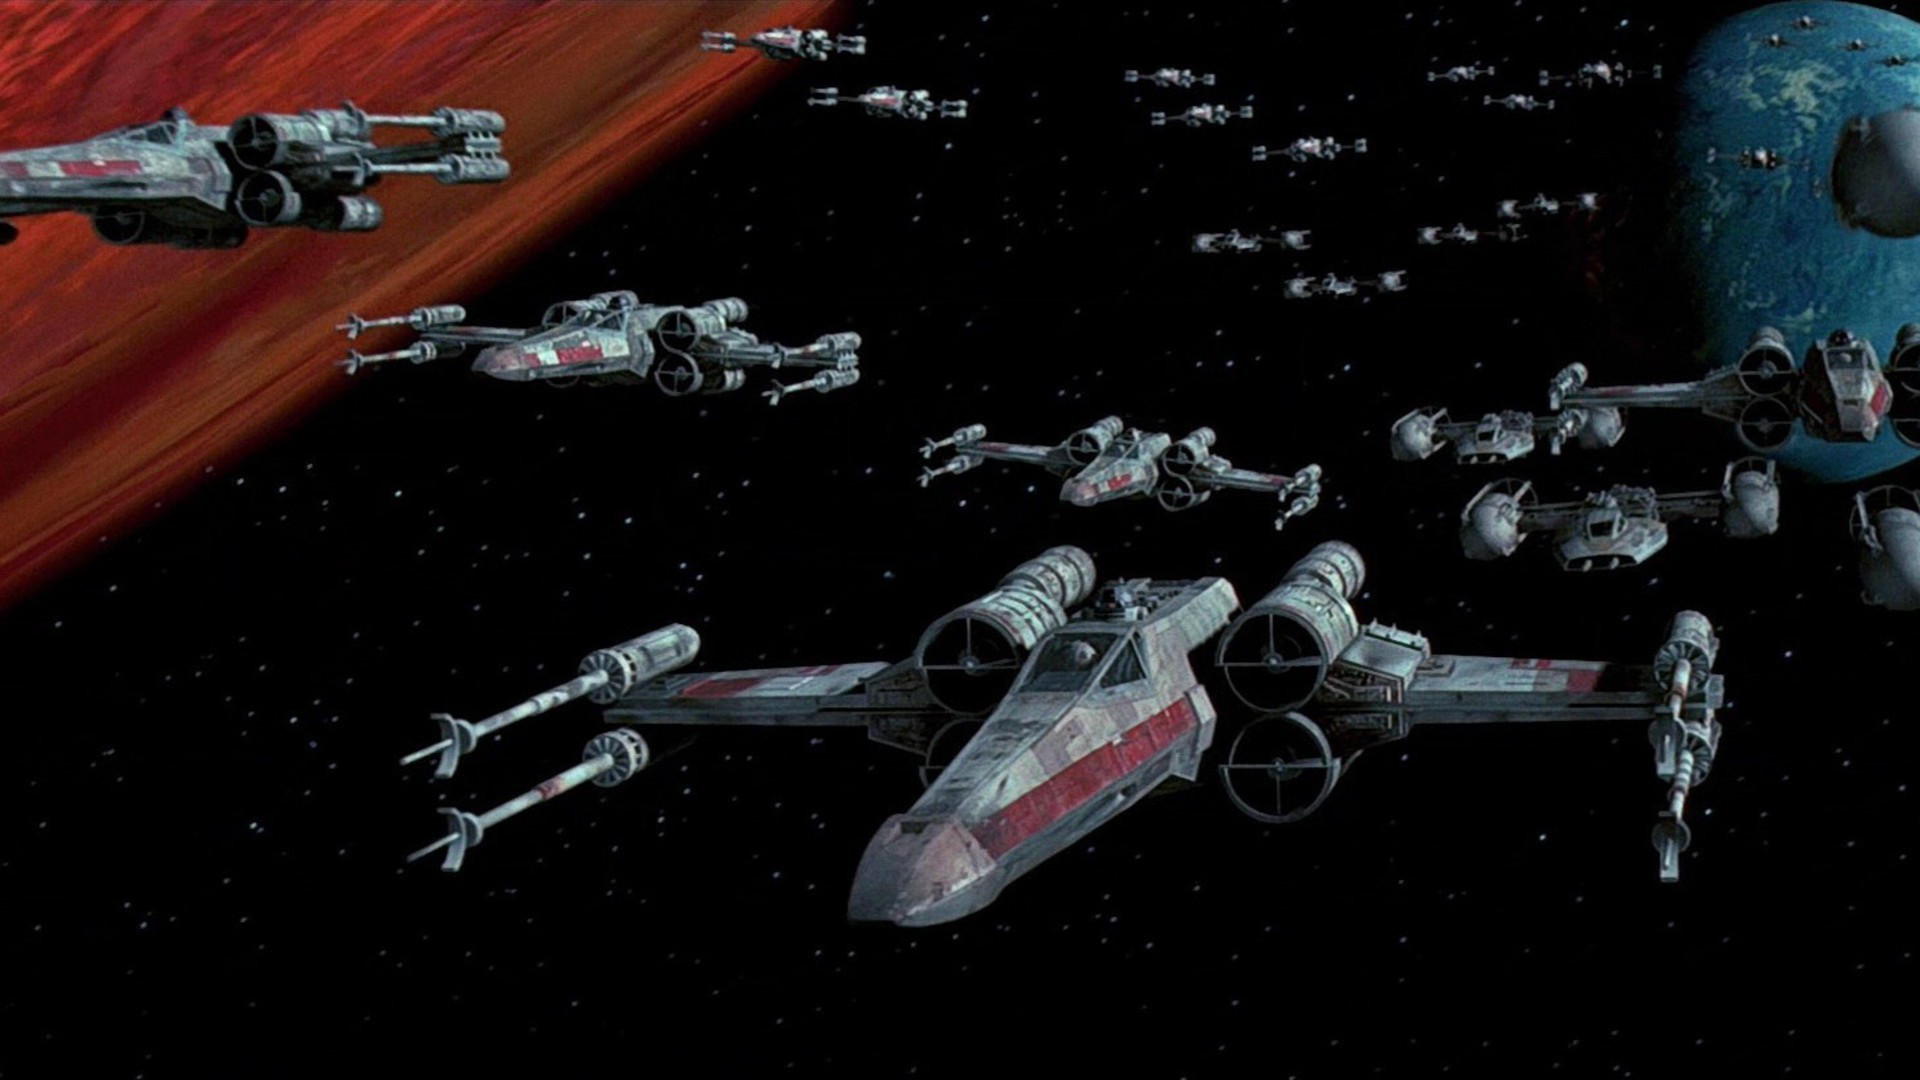 X Wing Wallpaper HD Full Pictures.